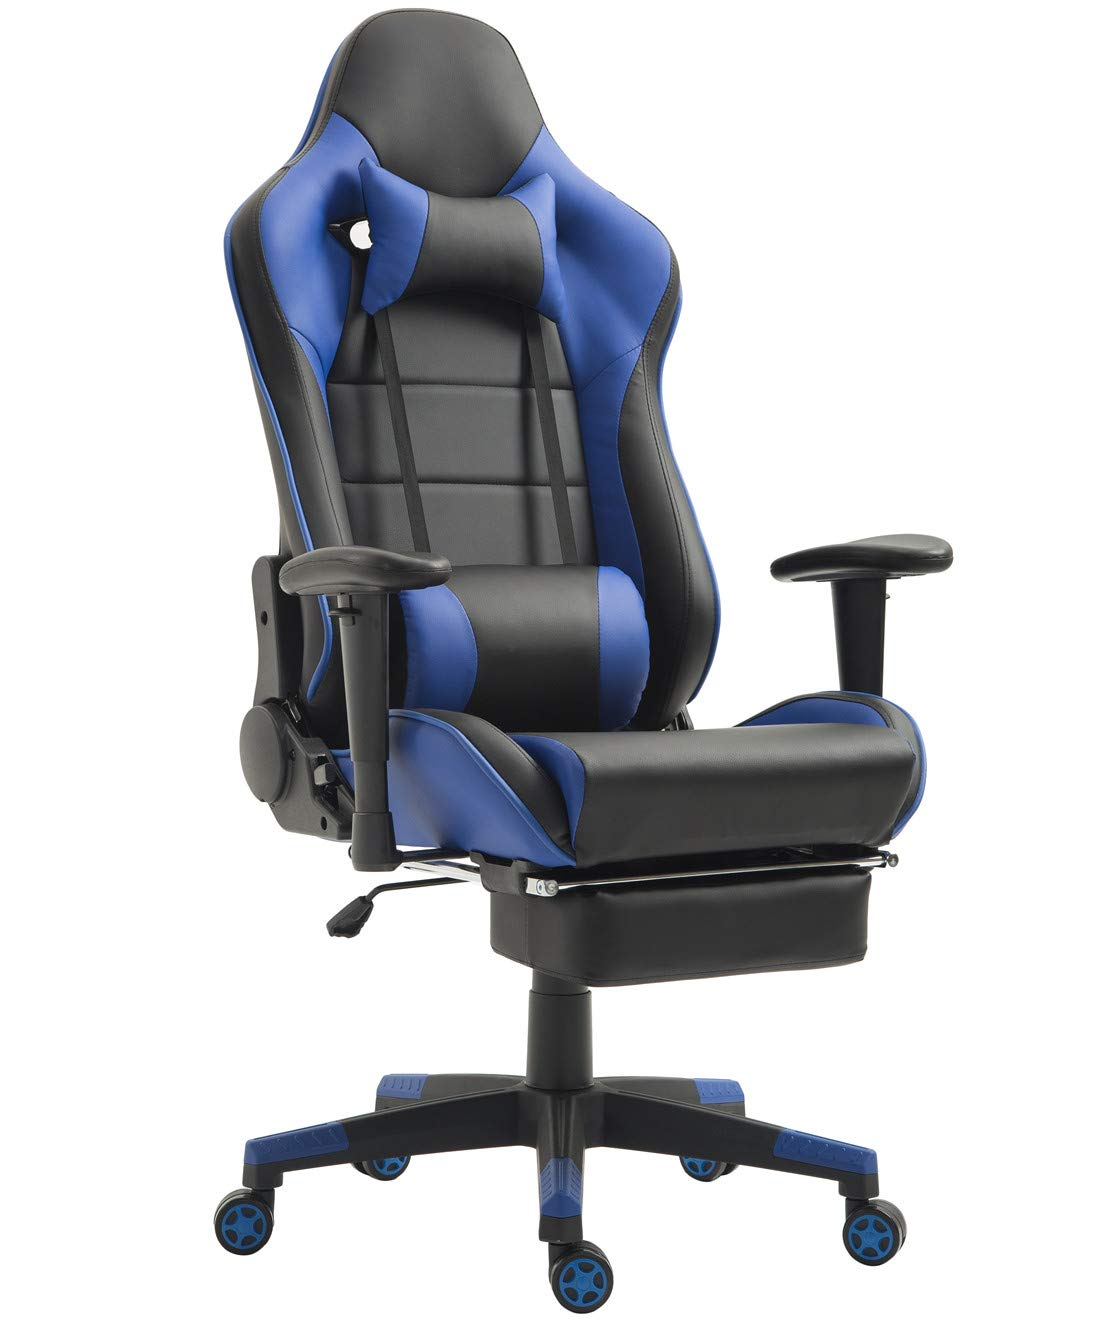 Gaming Chair with Footrest PC Computer Gamer Chair Video Game Racing Chair High Back Reclining Executive Ergonomic Office Desk Chair with Headrest Lumbar Support Cushion (Blue/Black with Footrest) by Tigo